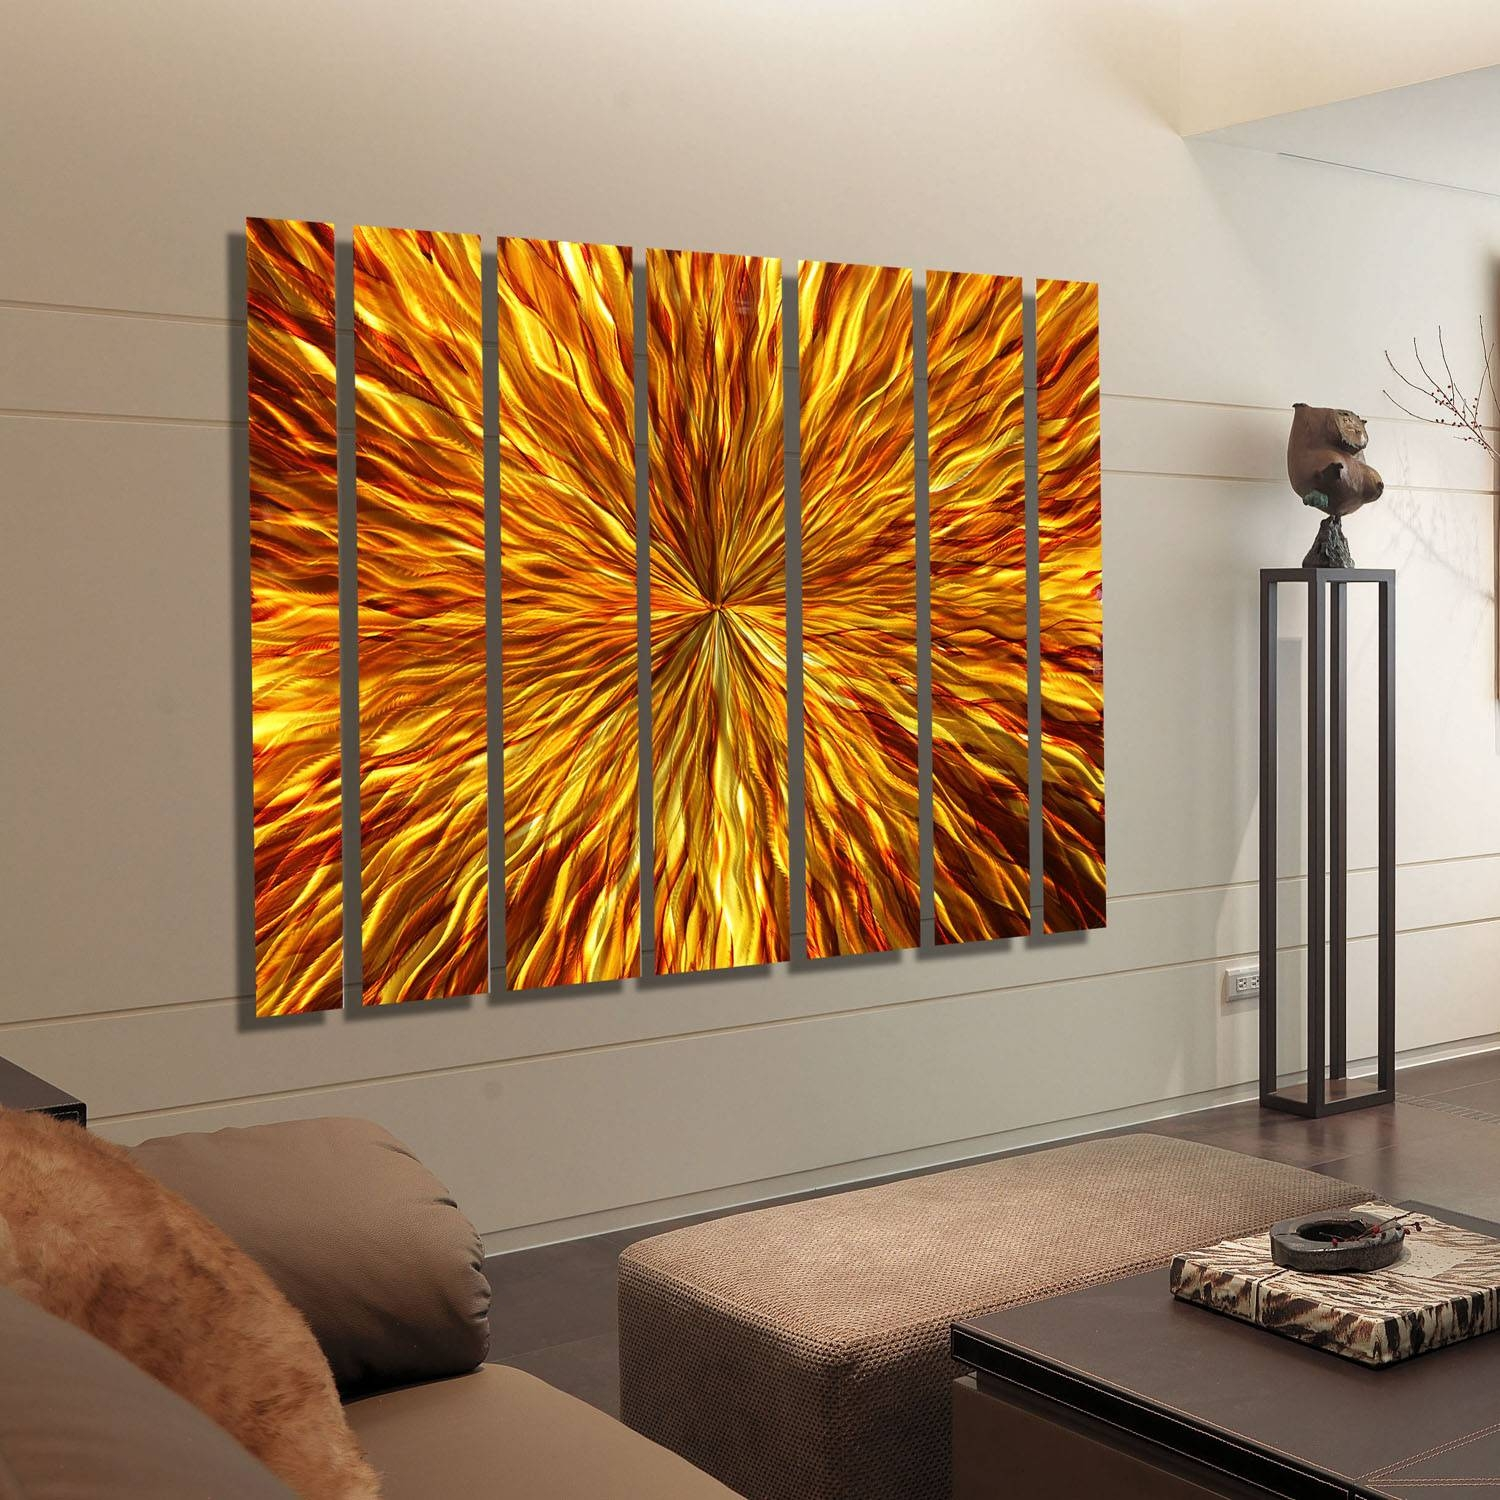 Amber Vortex Xl – Extra Large Modern Metal Wall Artjon Allen Regarding Most Recent Modern Oversized Wall Art (View 1 of 20)